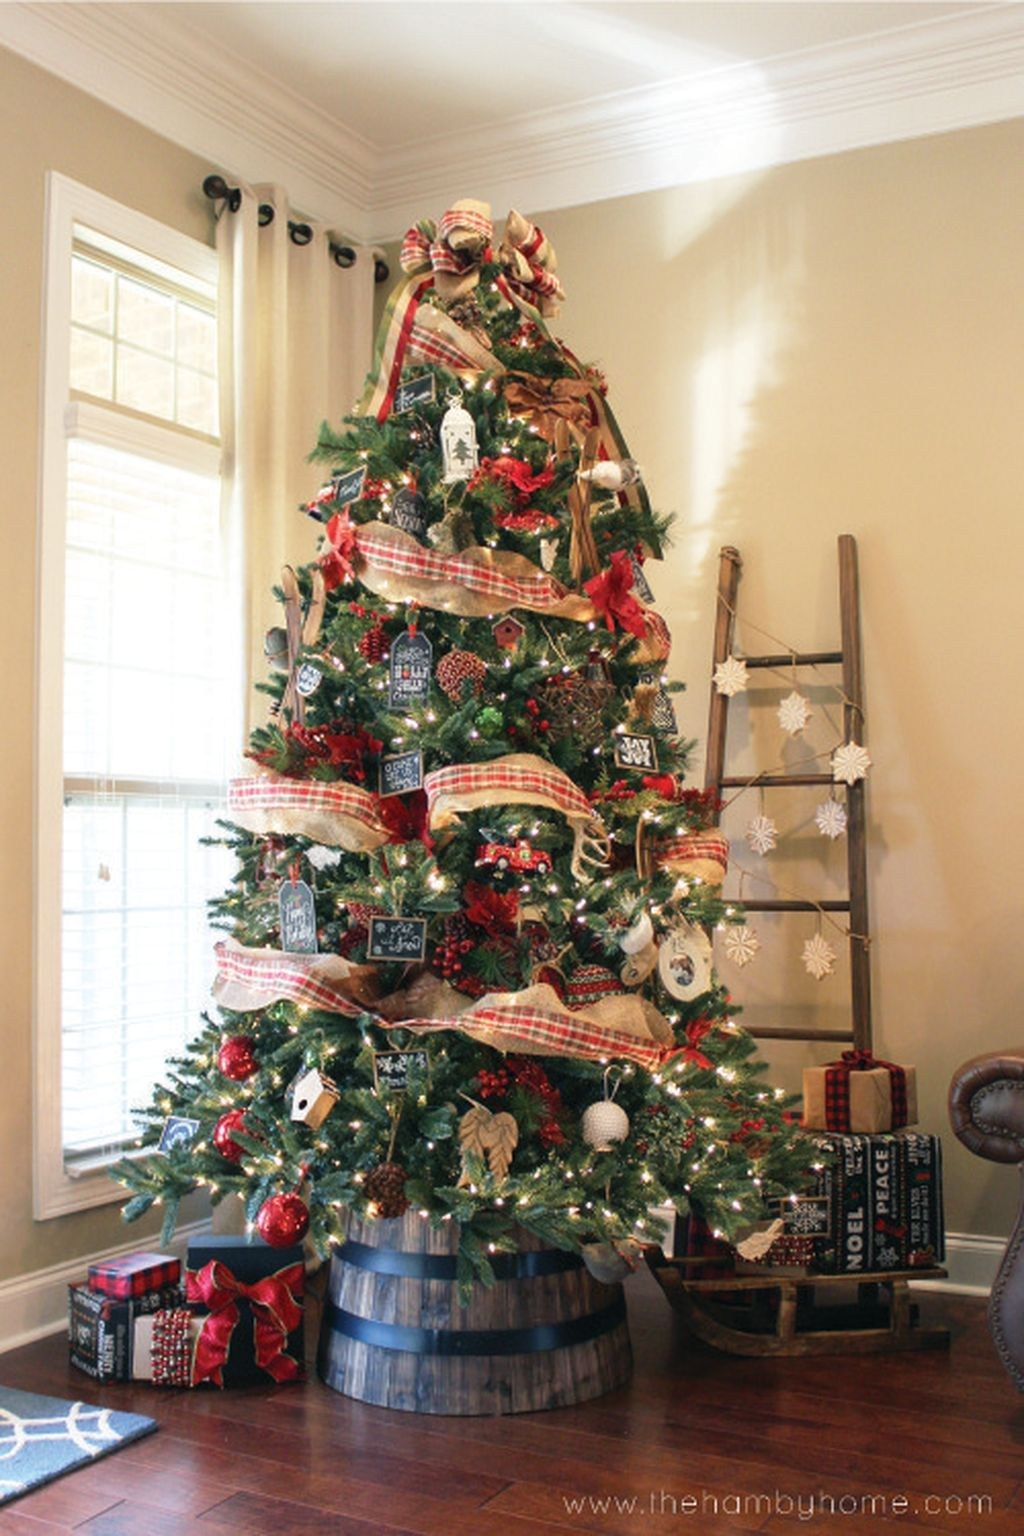 21 Vintage Christmas Tree Ideas For This Holiday Season